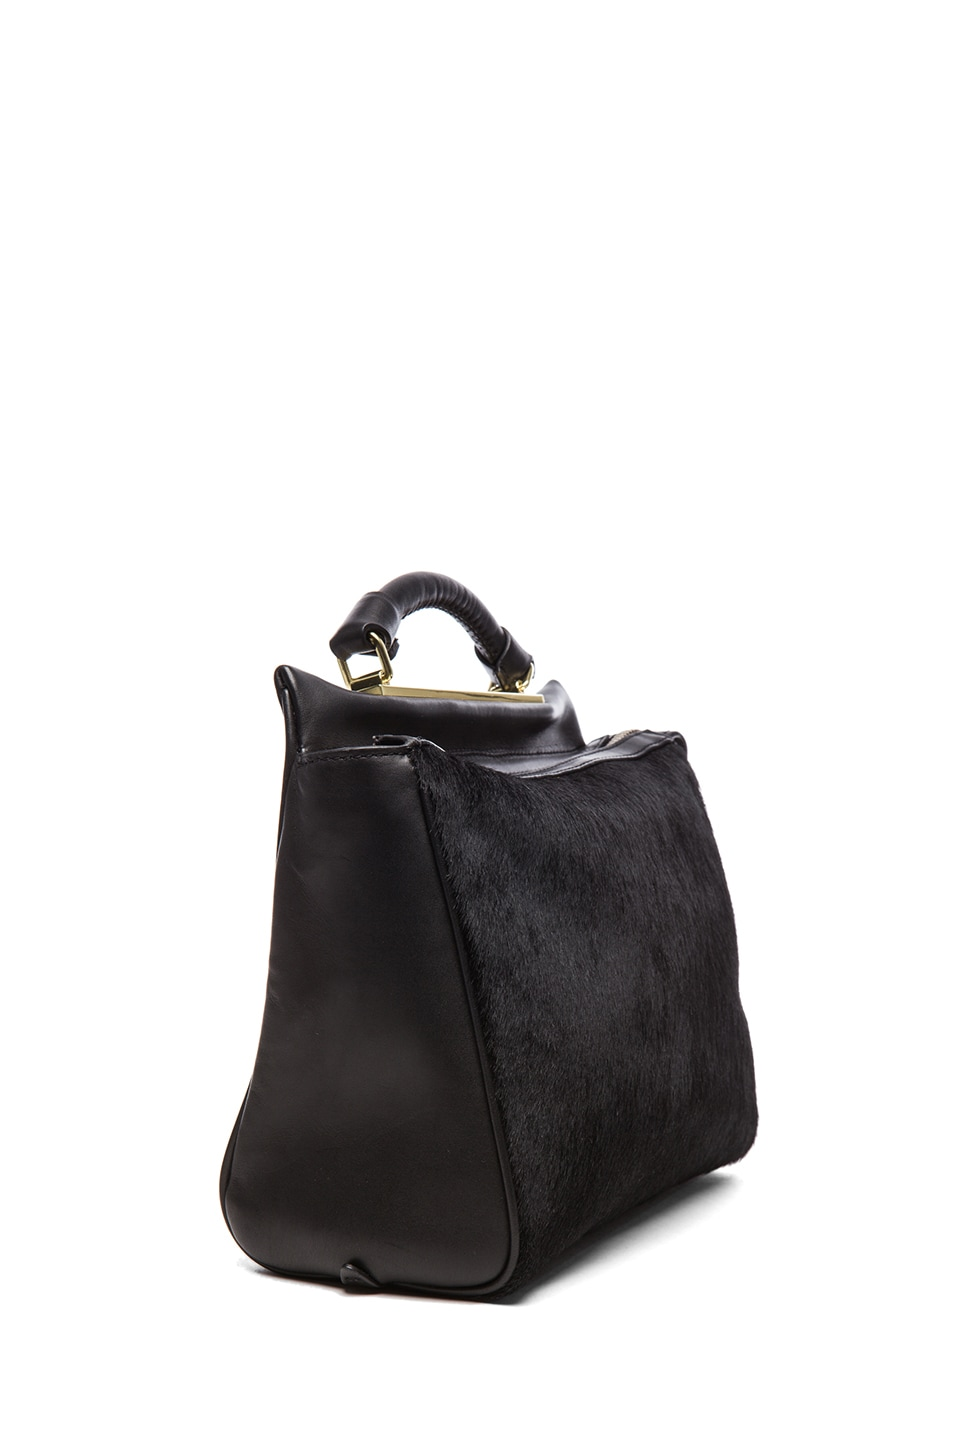 Image 3 of 3.1 phillip lim Small Ryder Satchel in Black